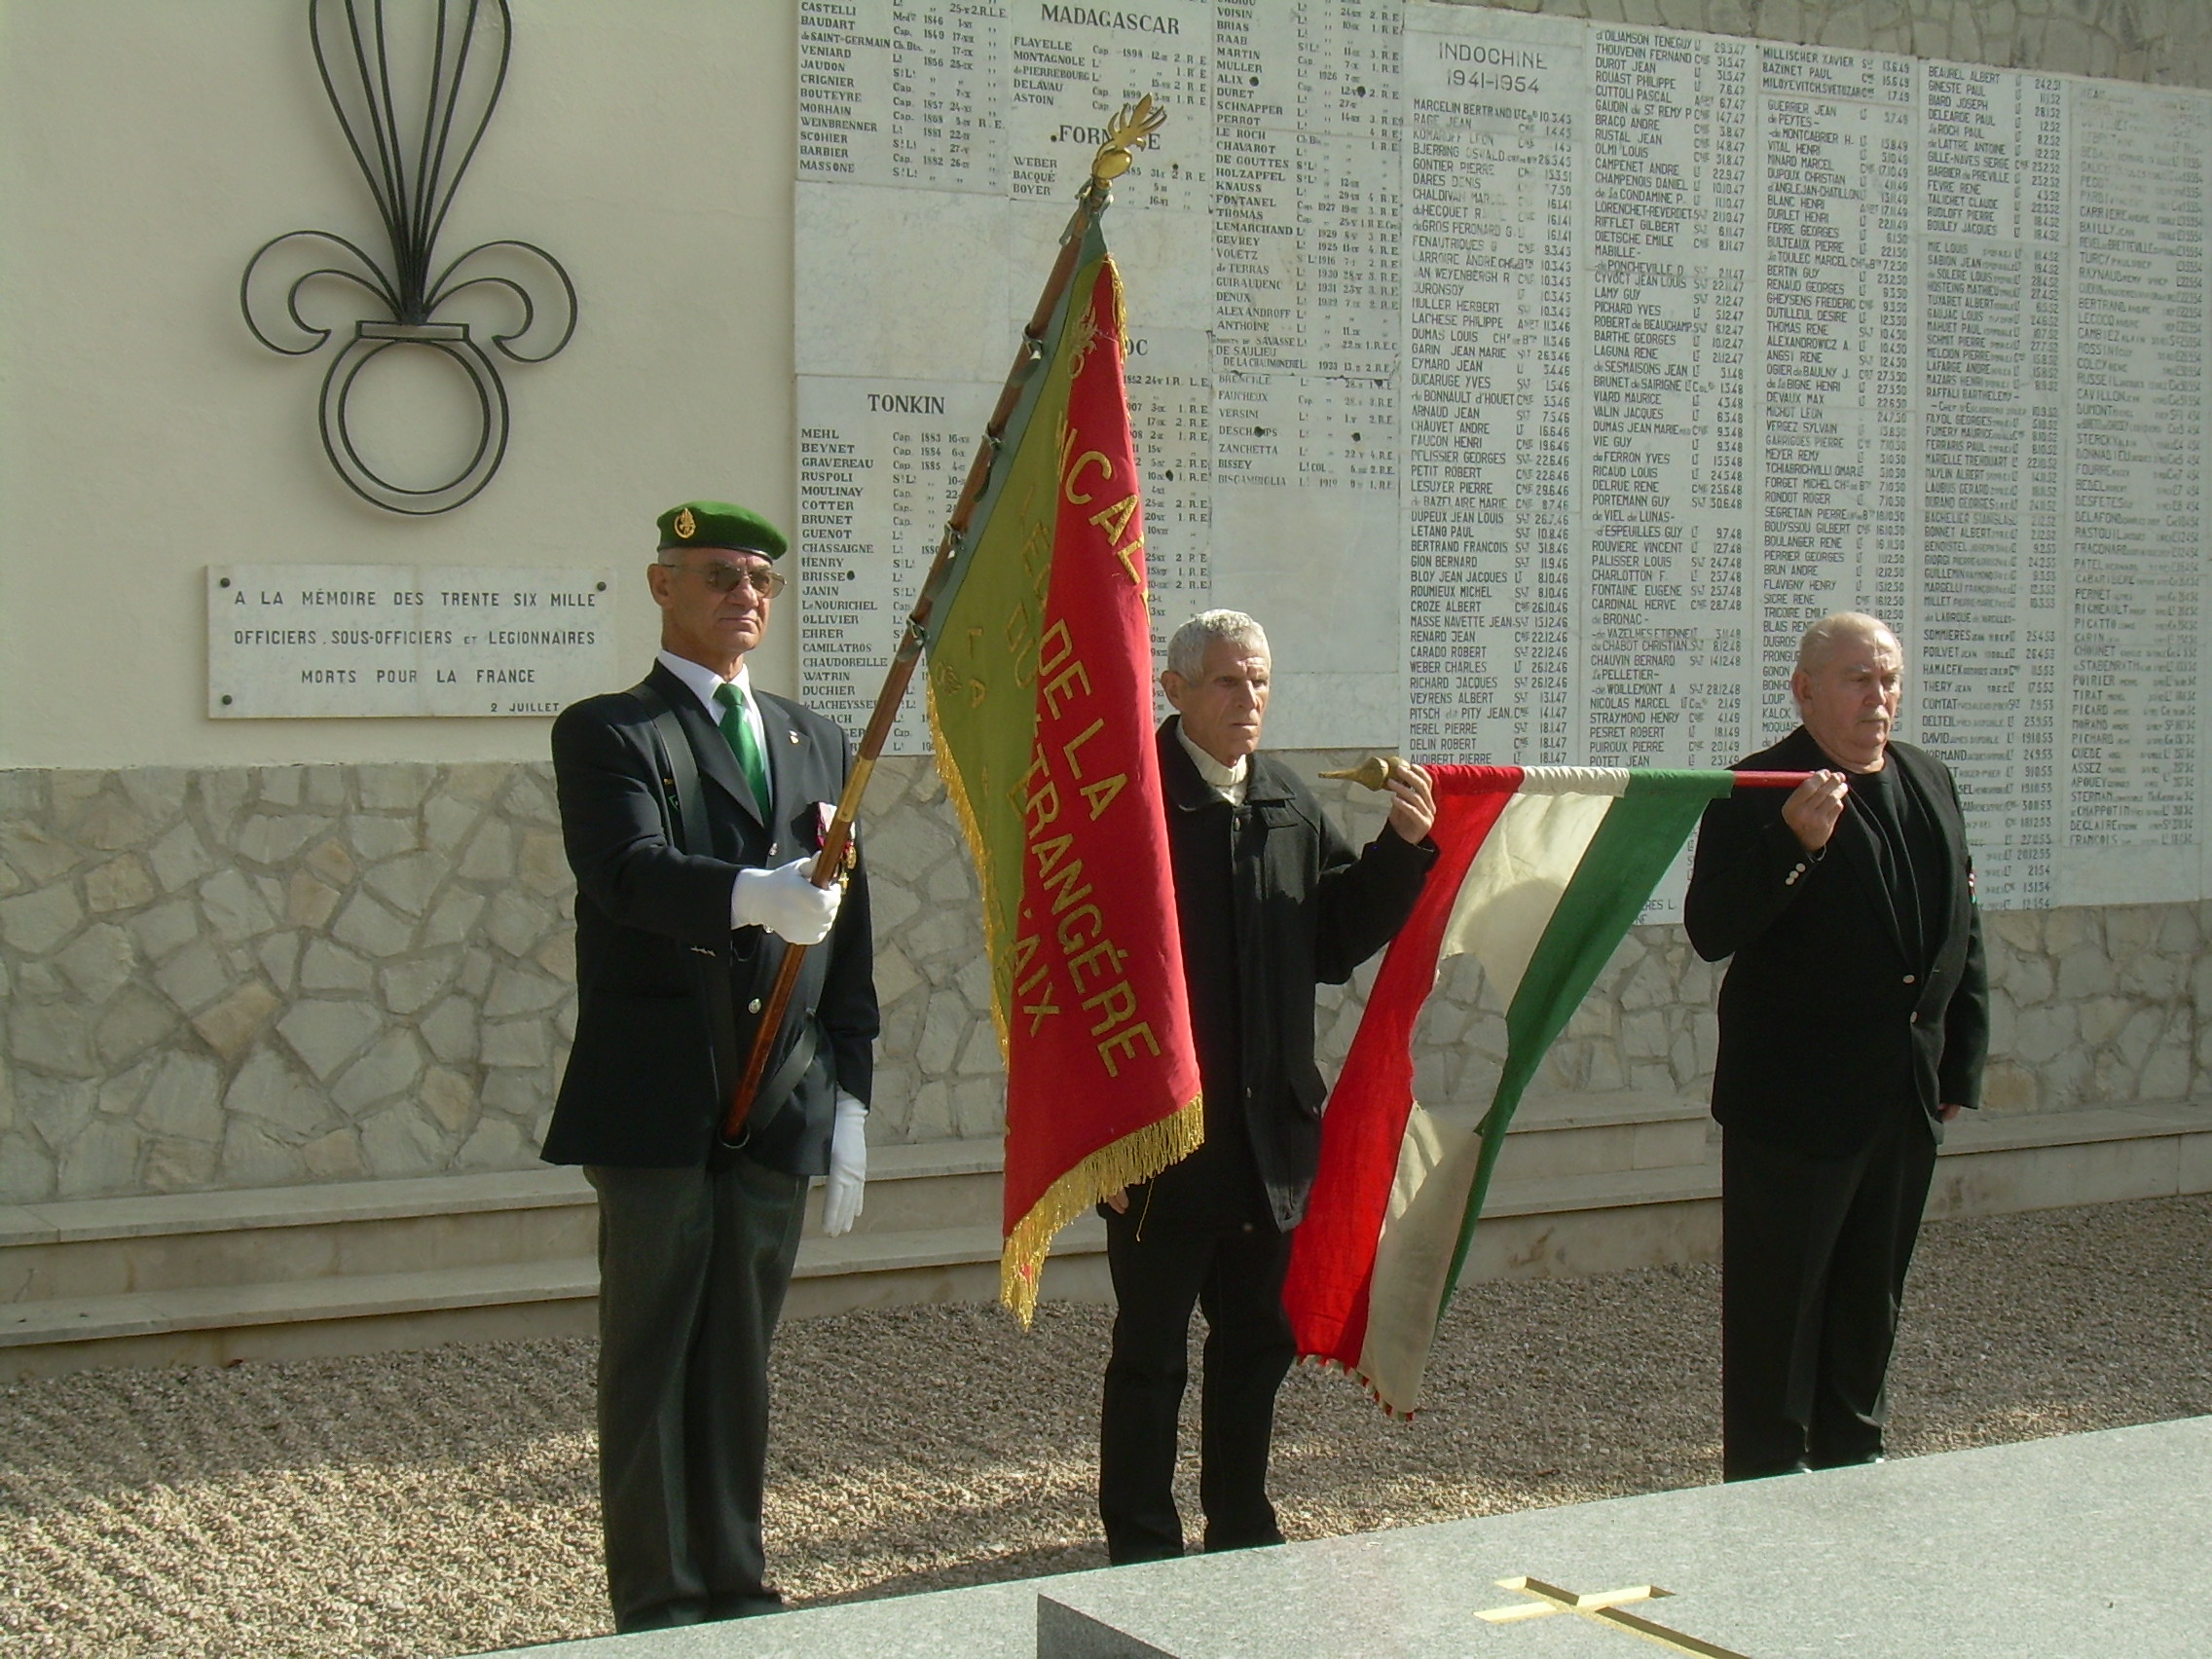 Hungarian veteran legionists' commemoration of the 1956 revolution, 23rd October 2011 Puyloubier, South of France